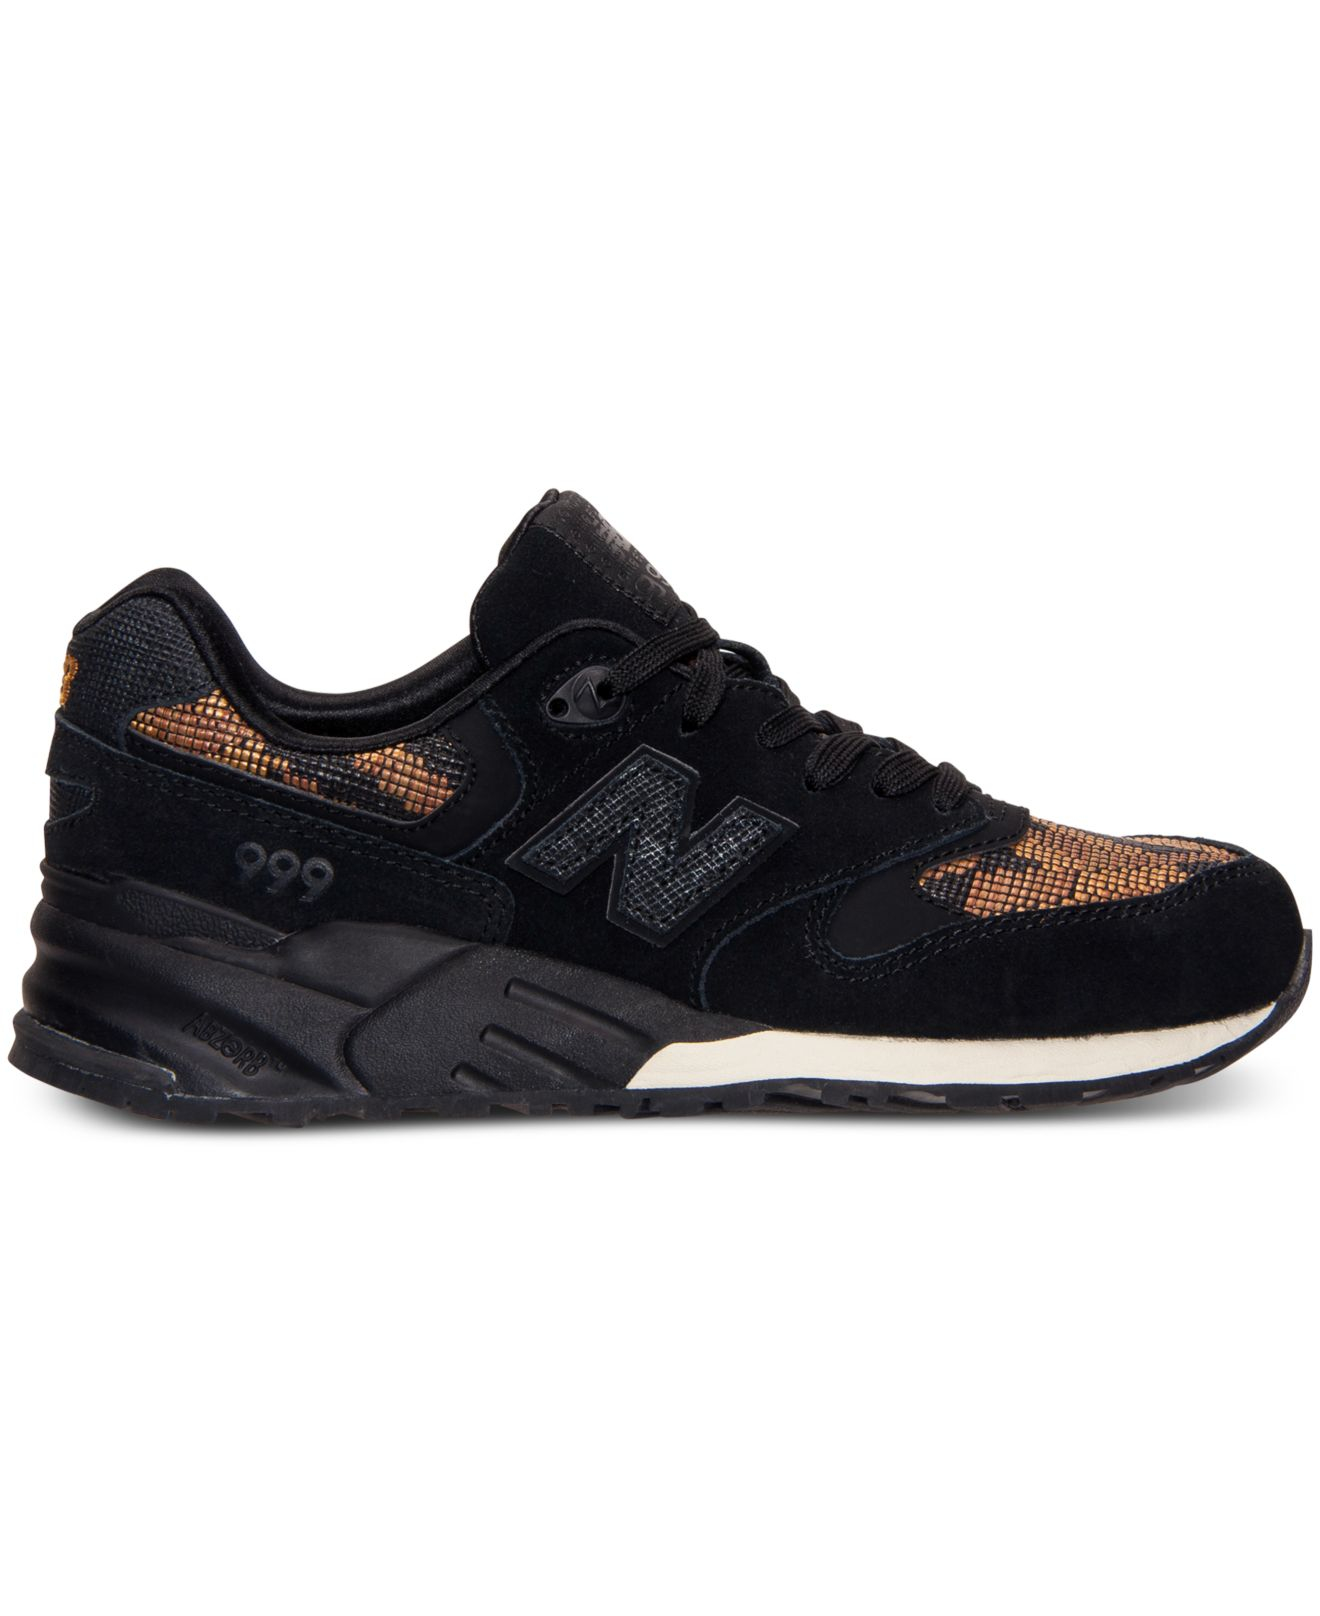 check out 38e58 50984 ... denmark lyst new balance womens 999 plastic weave casual sneakers from  597dc 91986 ...